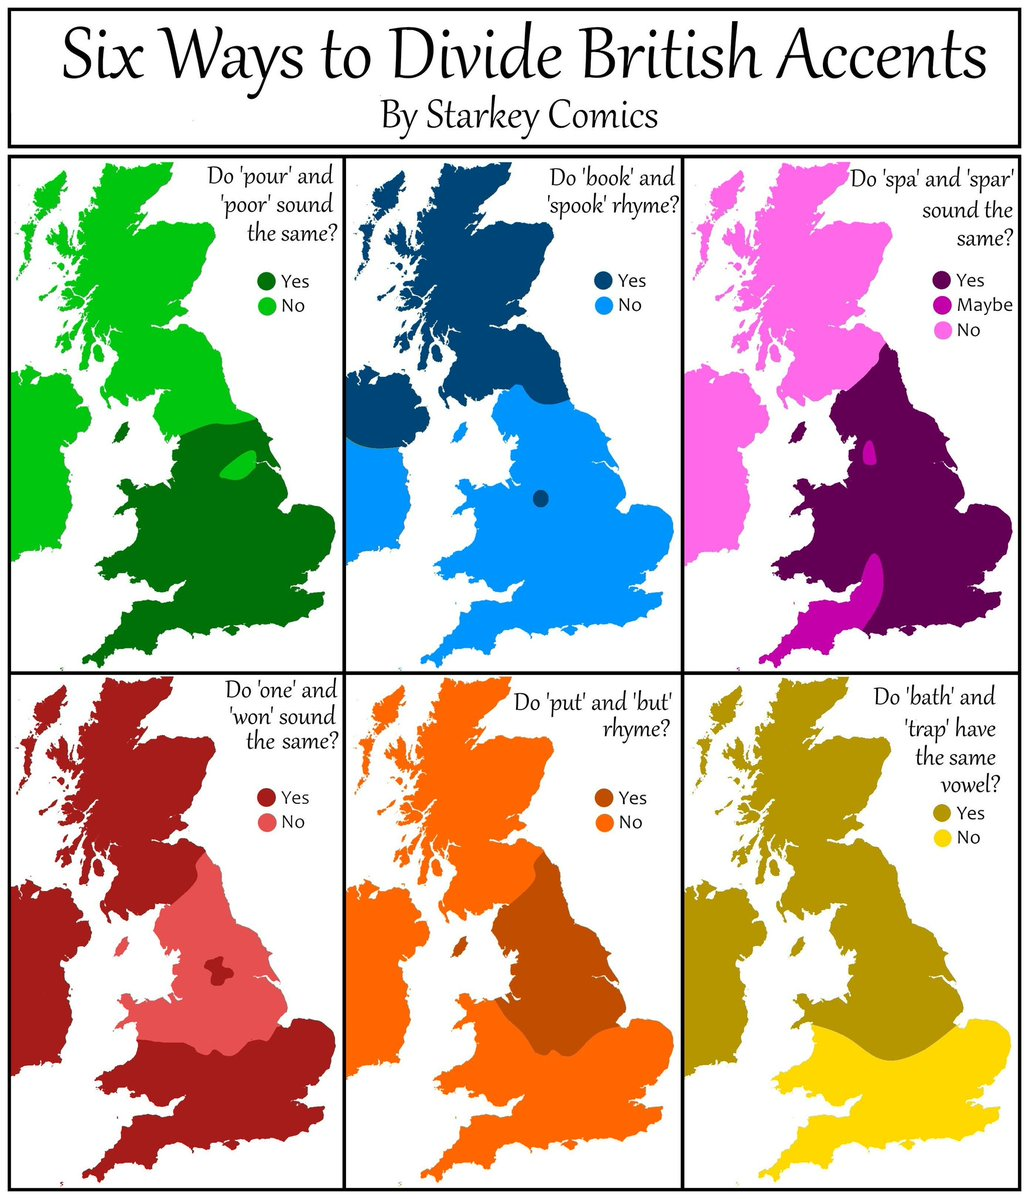 Six Ways to Divide British Accents